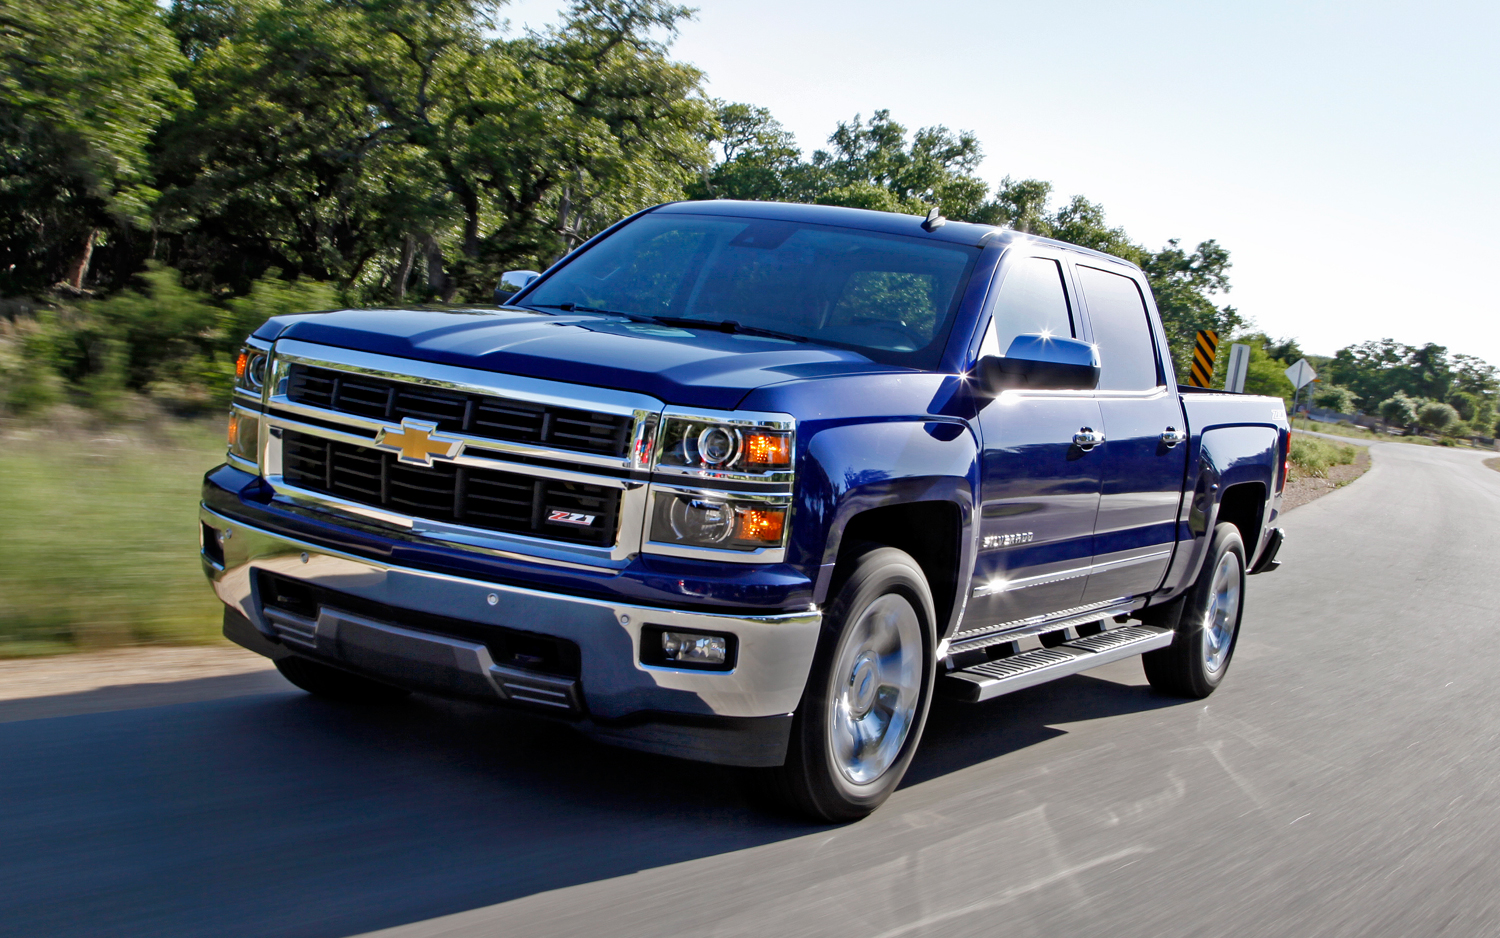 chevrolet silverado wallpaper #9